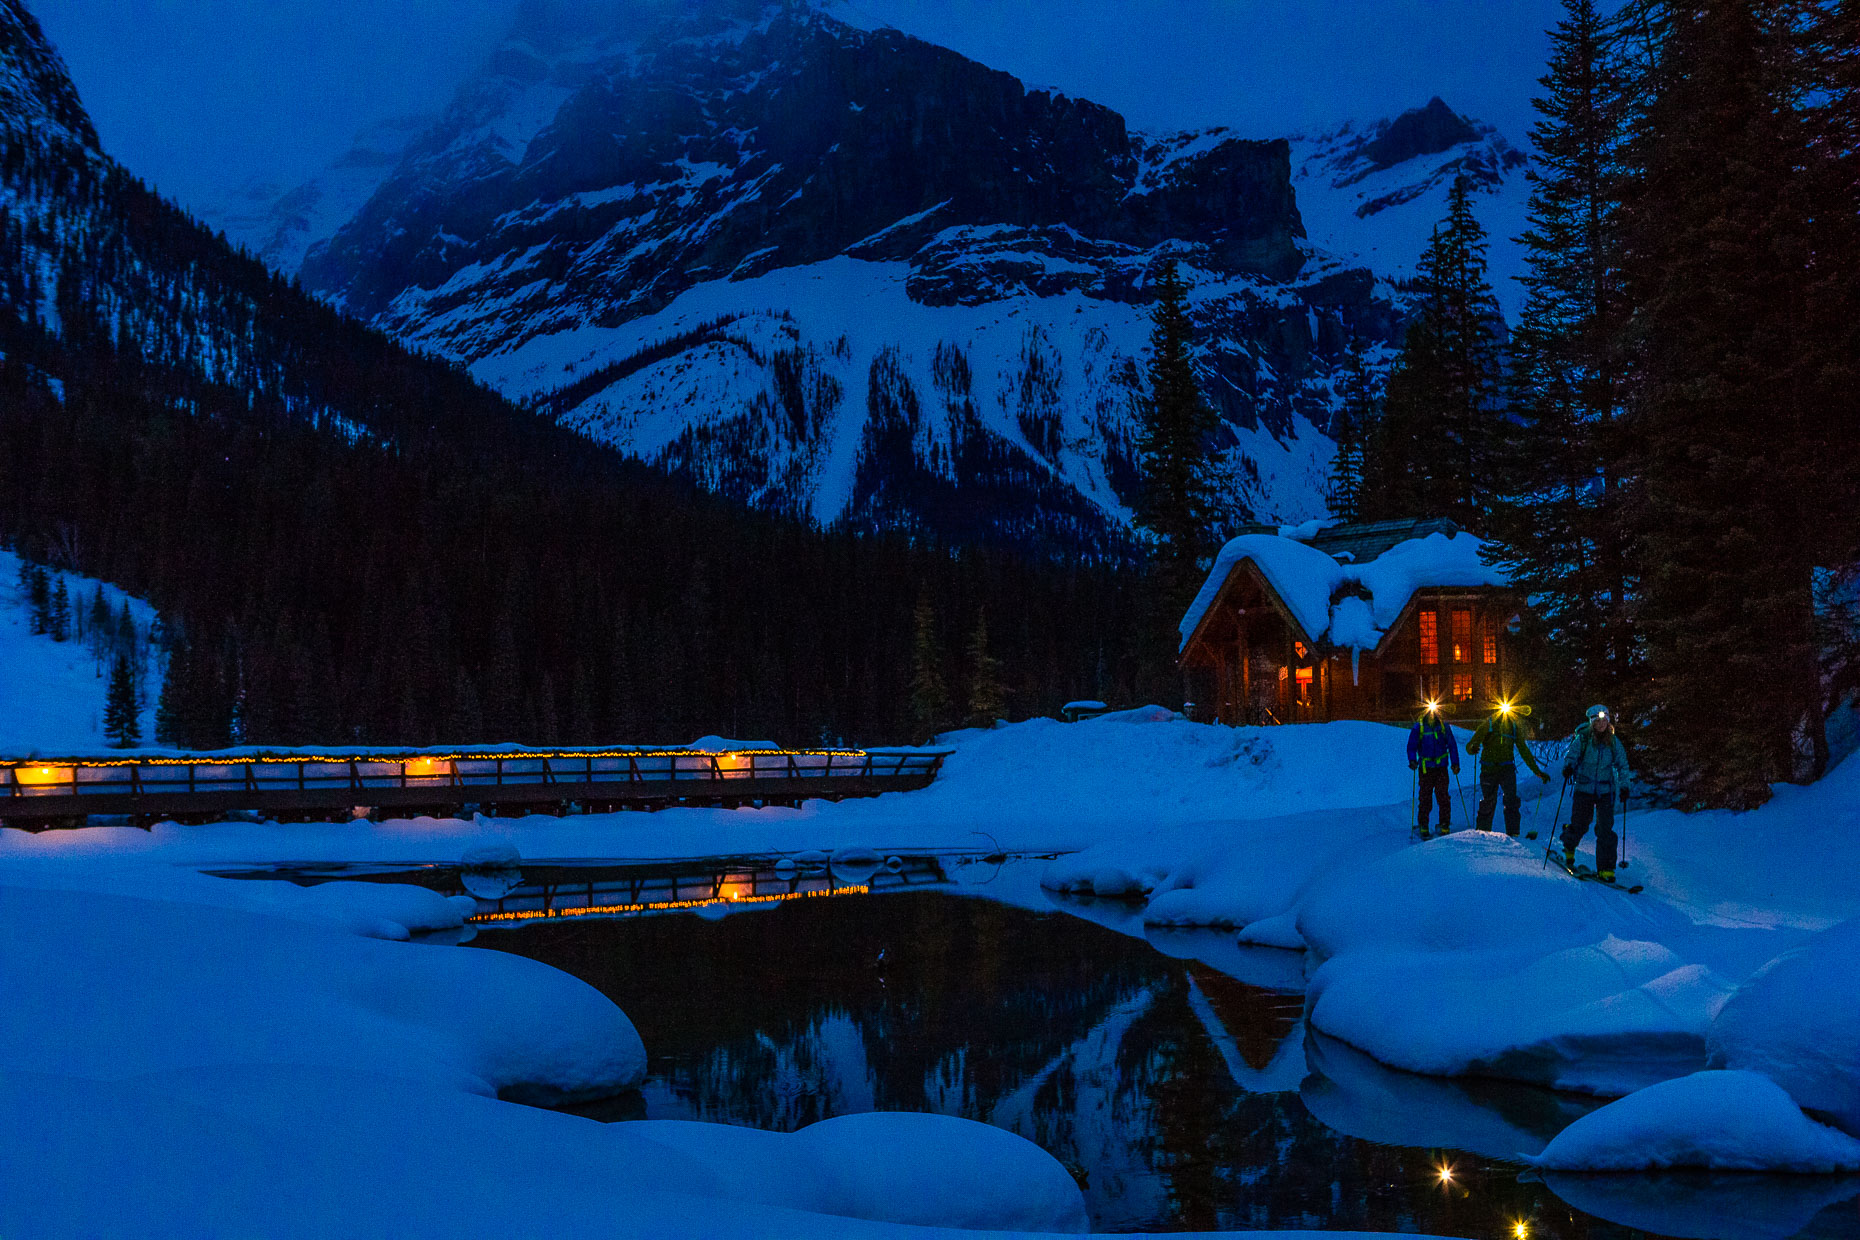 Emerald Lake Lodge, Night, ski touring, 079_55598_GG_434